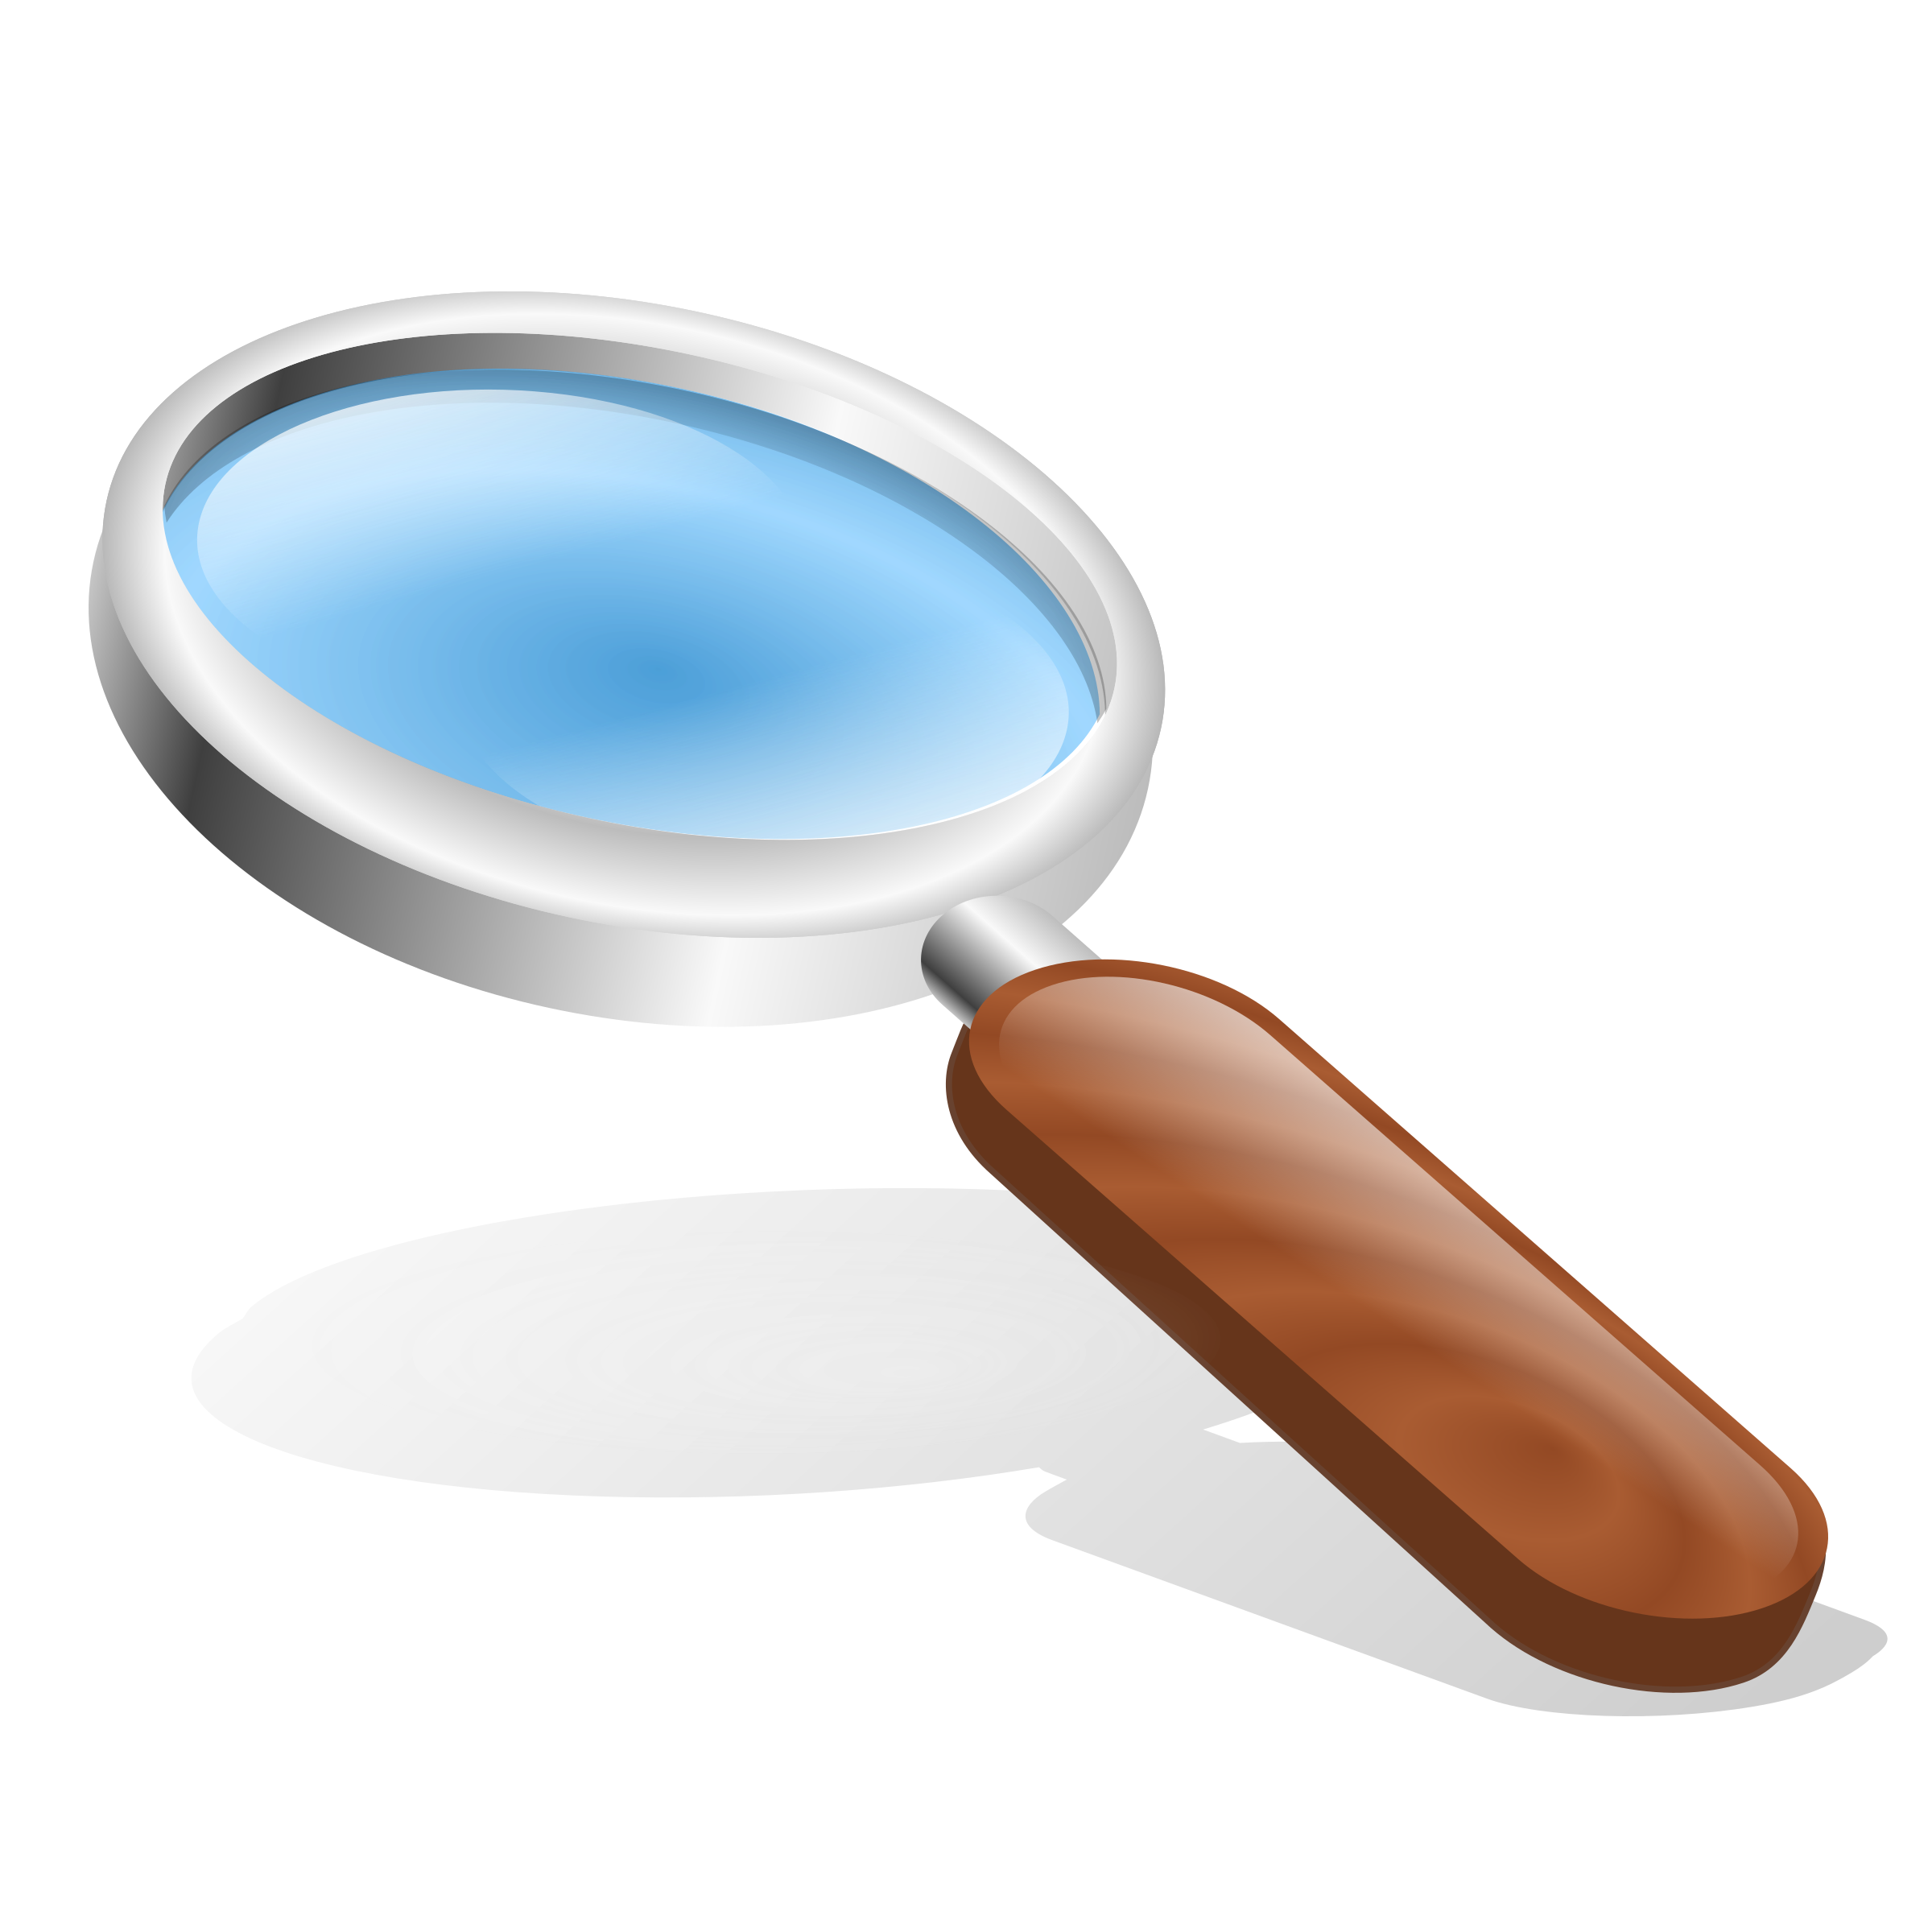 Mystery clipart magnifier. Magnifying glass big image